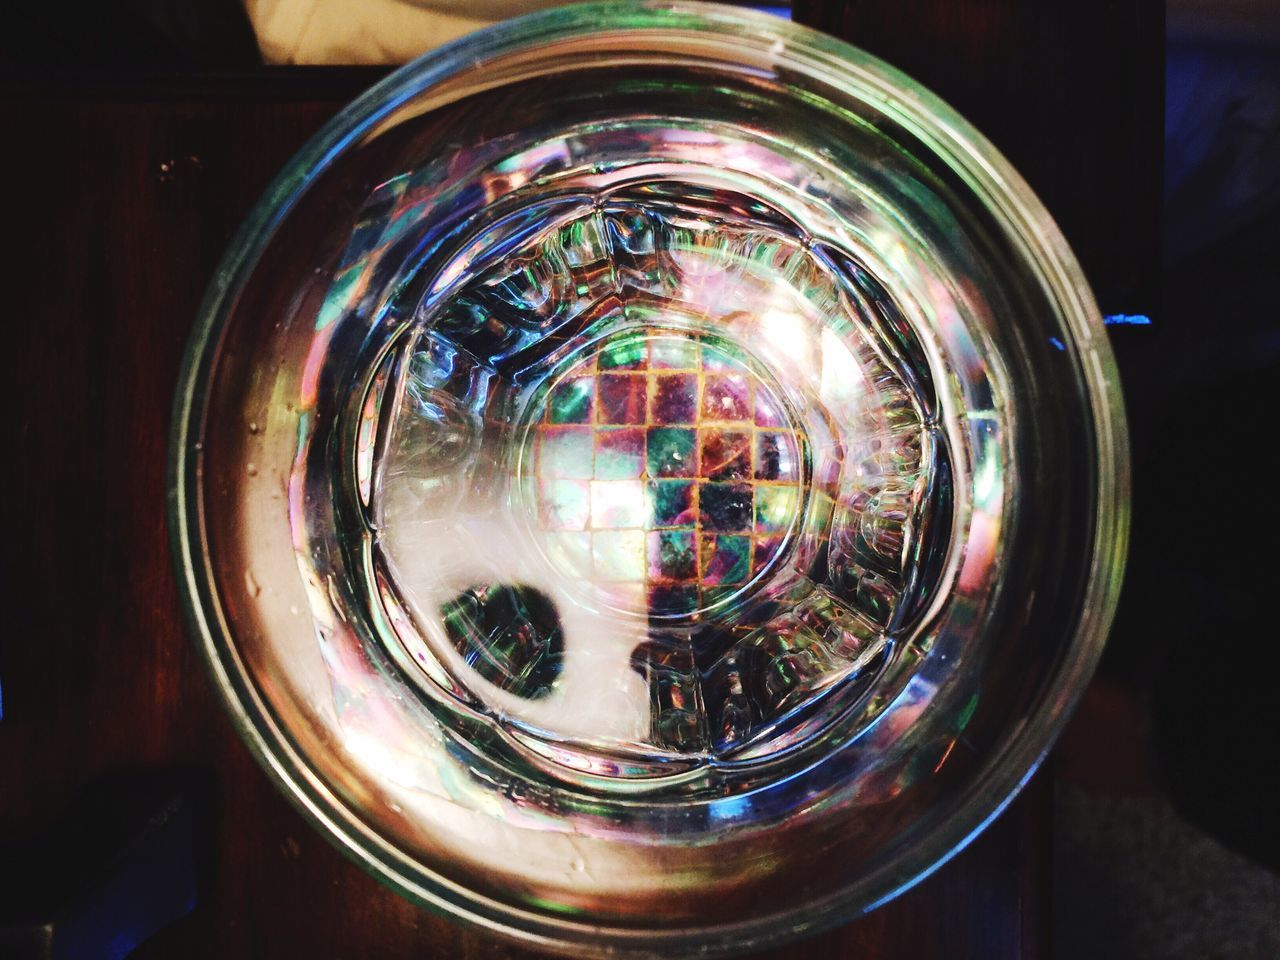 Water Glass on Coaster Colorfull Color Play On Nightstand Cindy Greenstein Photography Light And Love EyeEm Gallery Cindy Greenstein Photography IPhoneography IPhoneArtism Iphone6+ Iphone6splus Photo Art Pattern Pieces Patterns & Textures